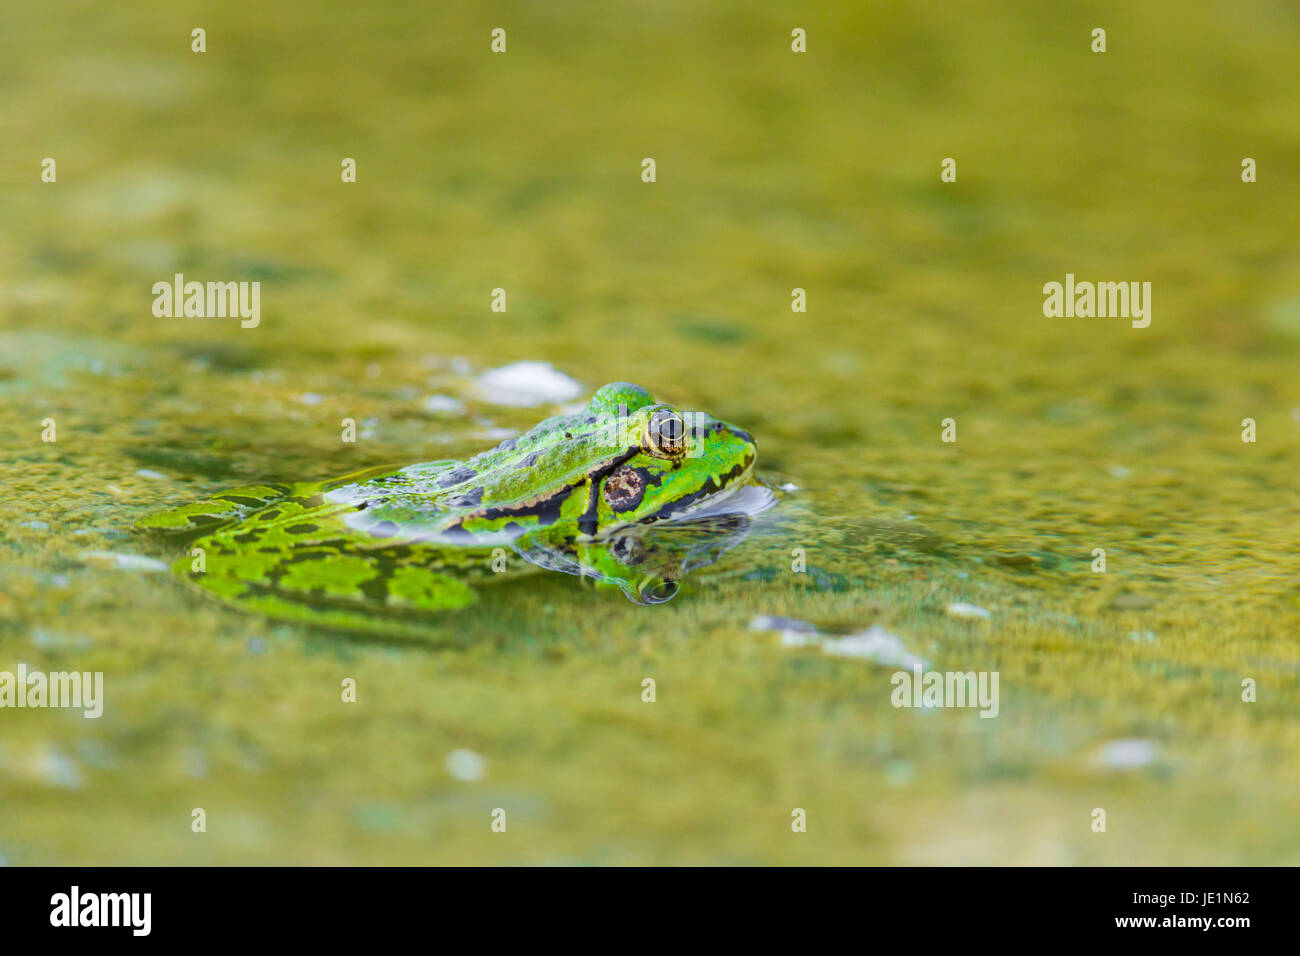 portrait of natural green frog (Rana esculenta) sitting in water - Stock Image